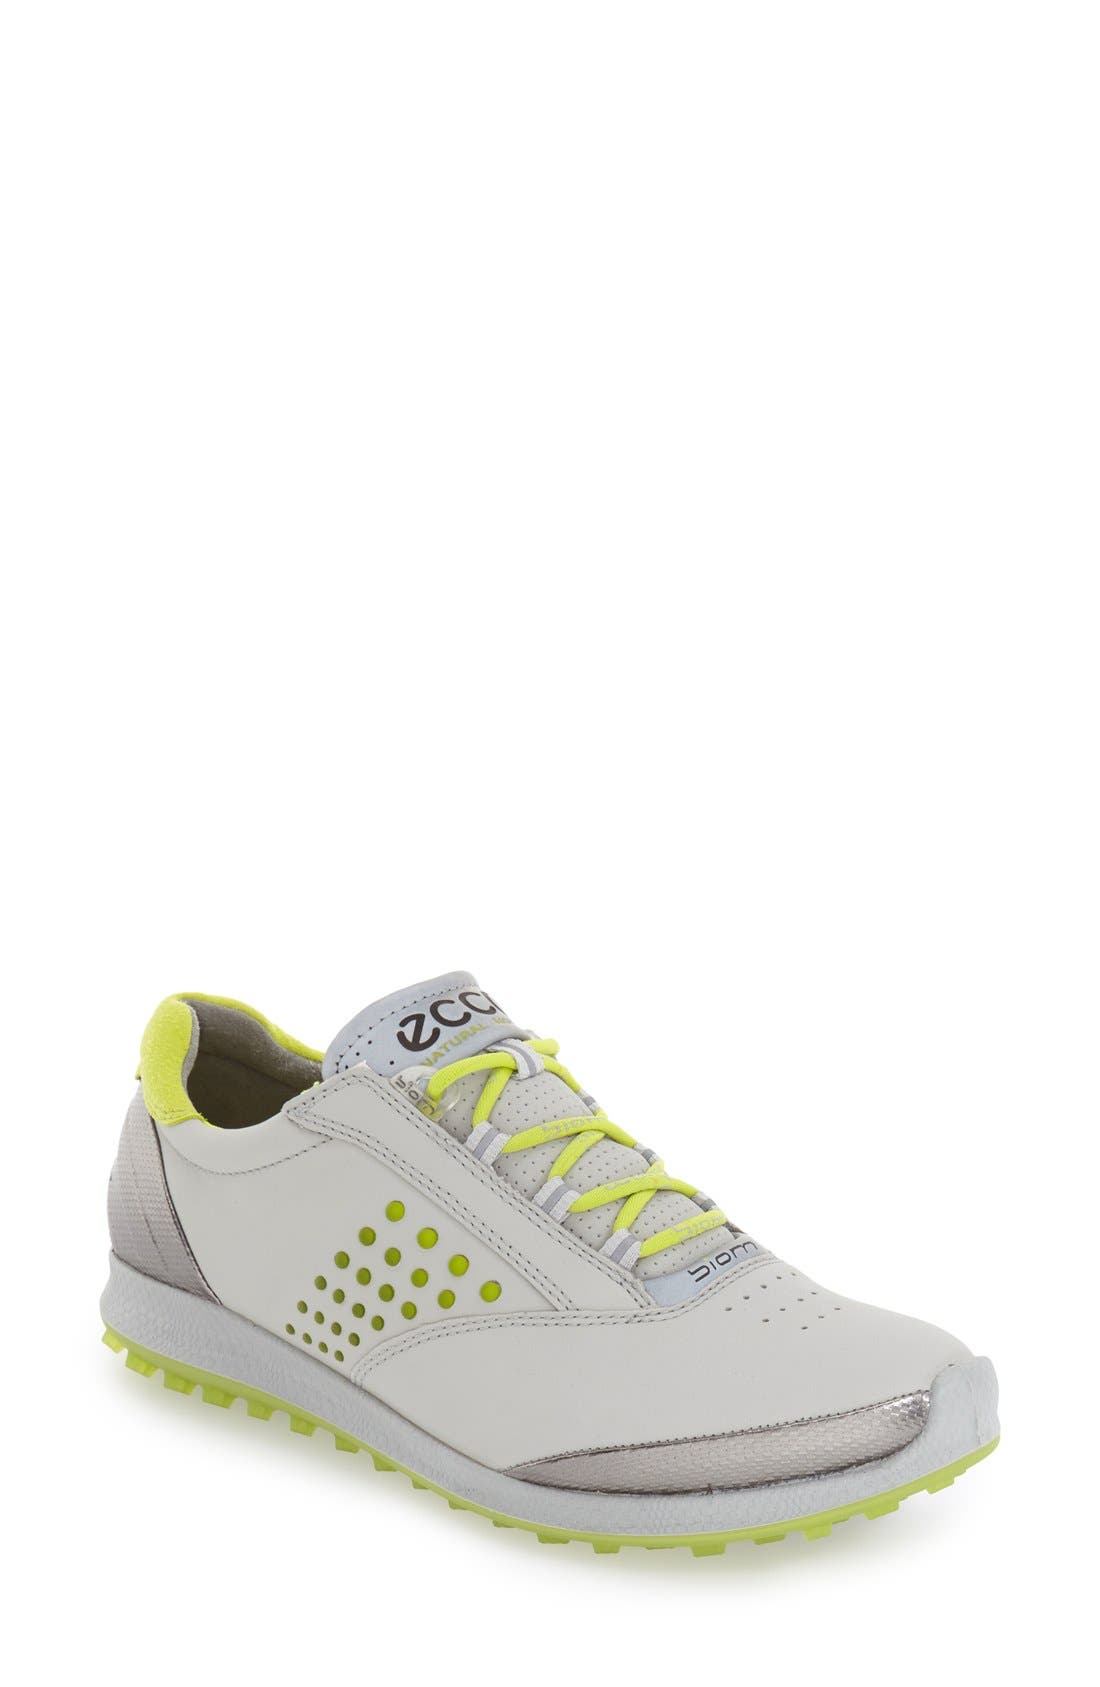 ECCO 'BIOM' Hydromax® Waterproof Golf Shoe